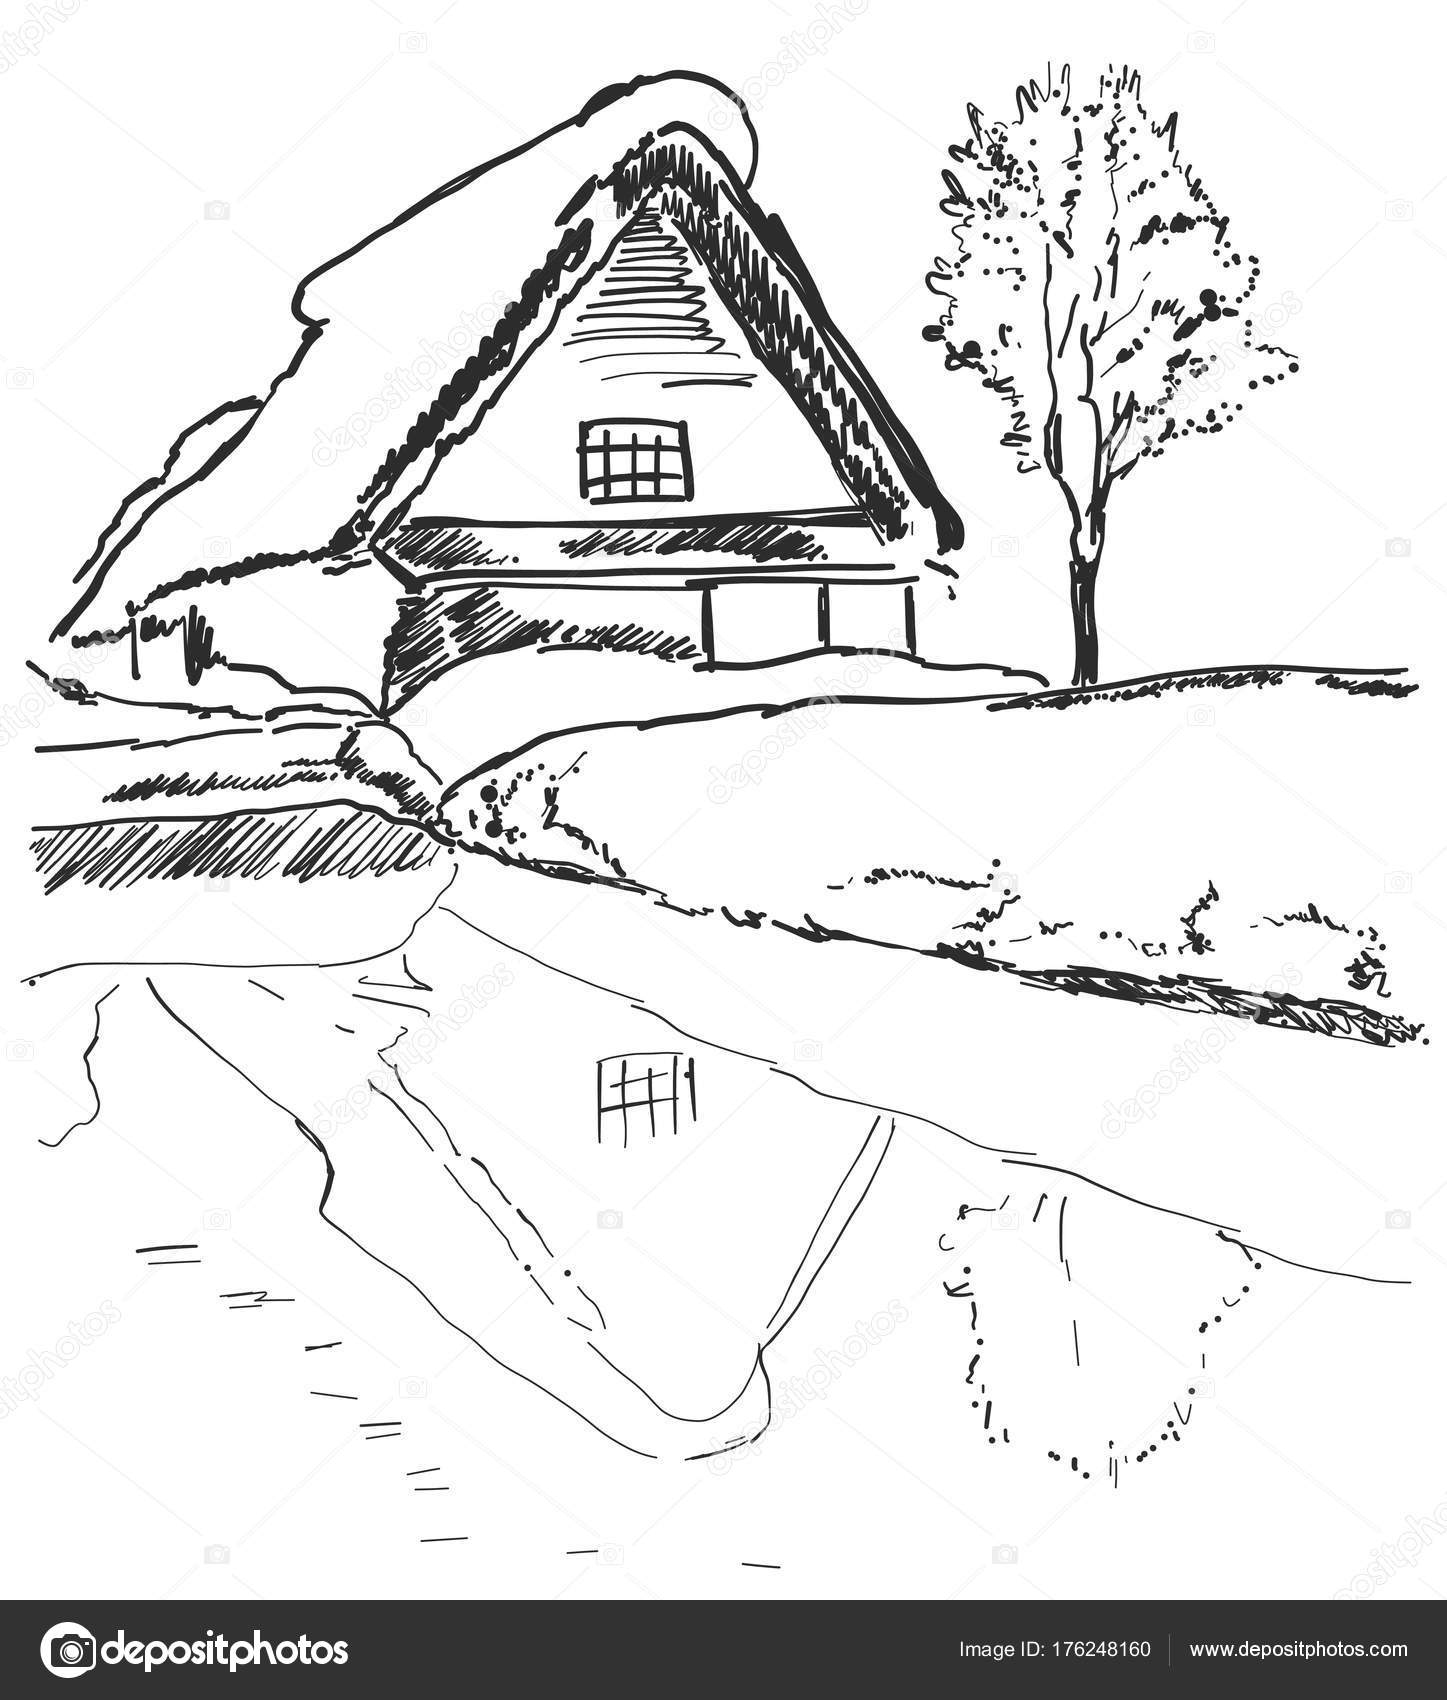 Hill, lake, house, tree  Landscape sketch  Mirror image